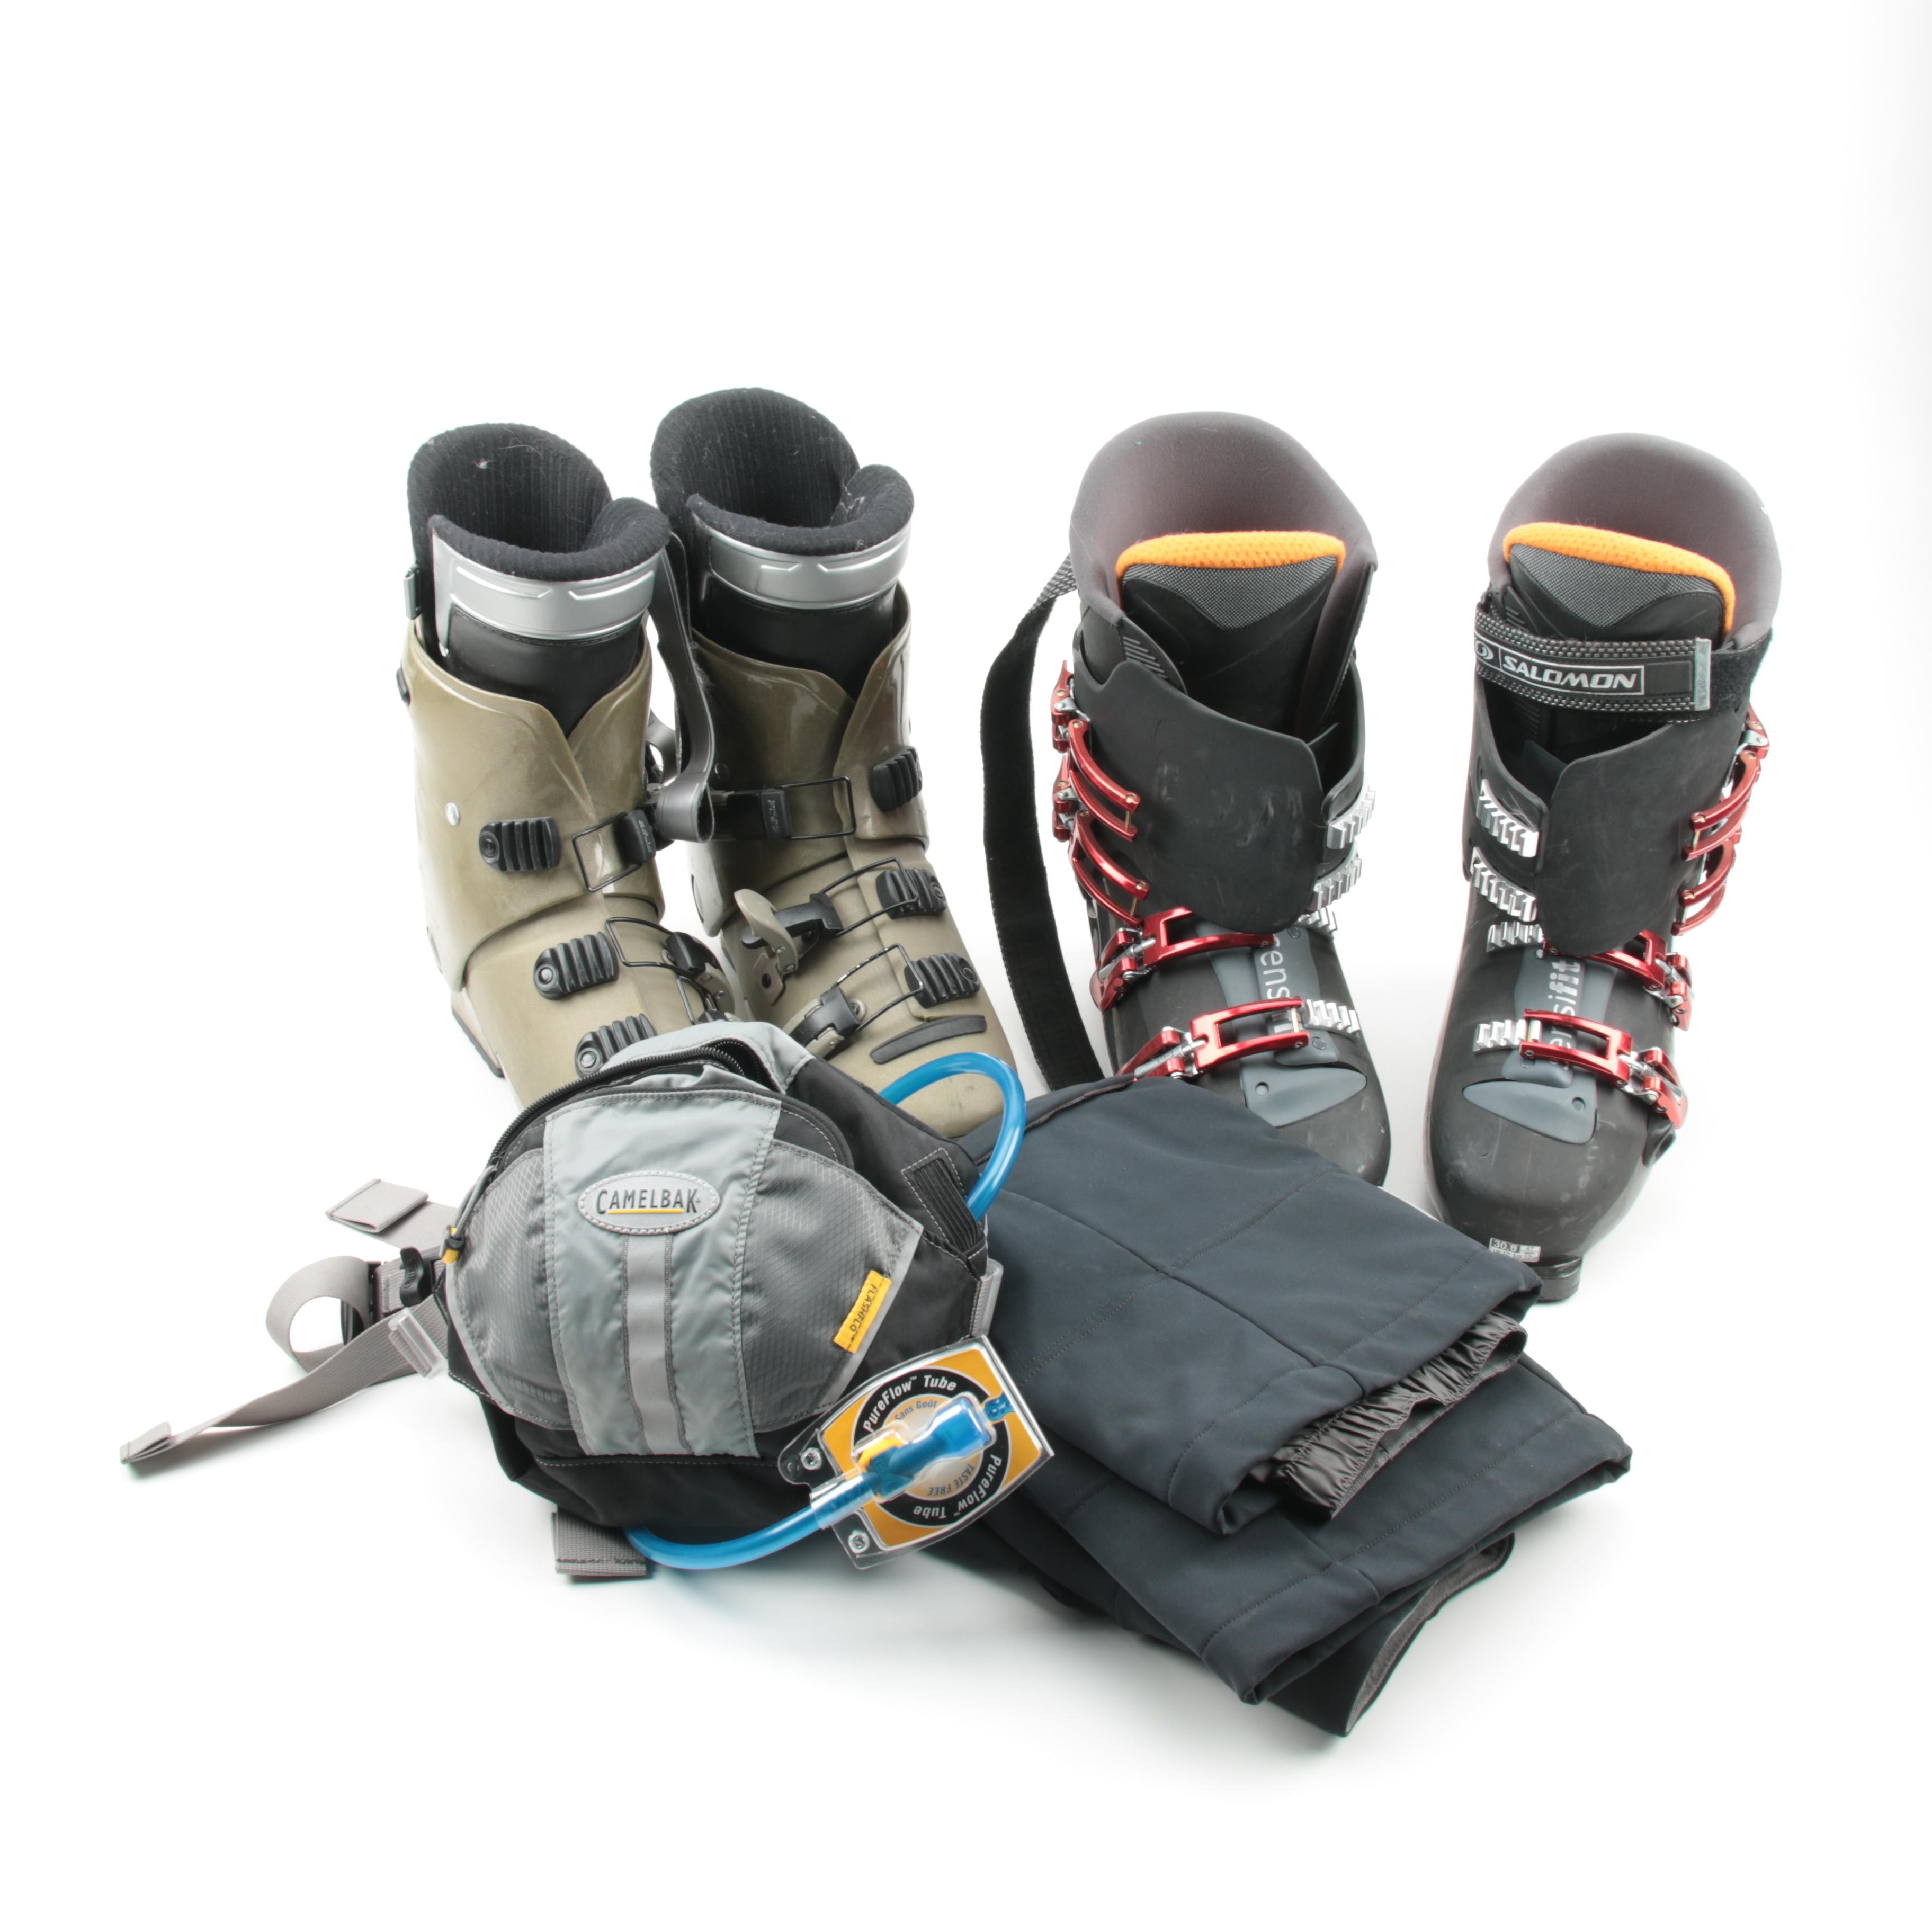 Salomon and Nordica Ski Boots with CamelBak Hydration Pouch and Ski Pants